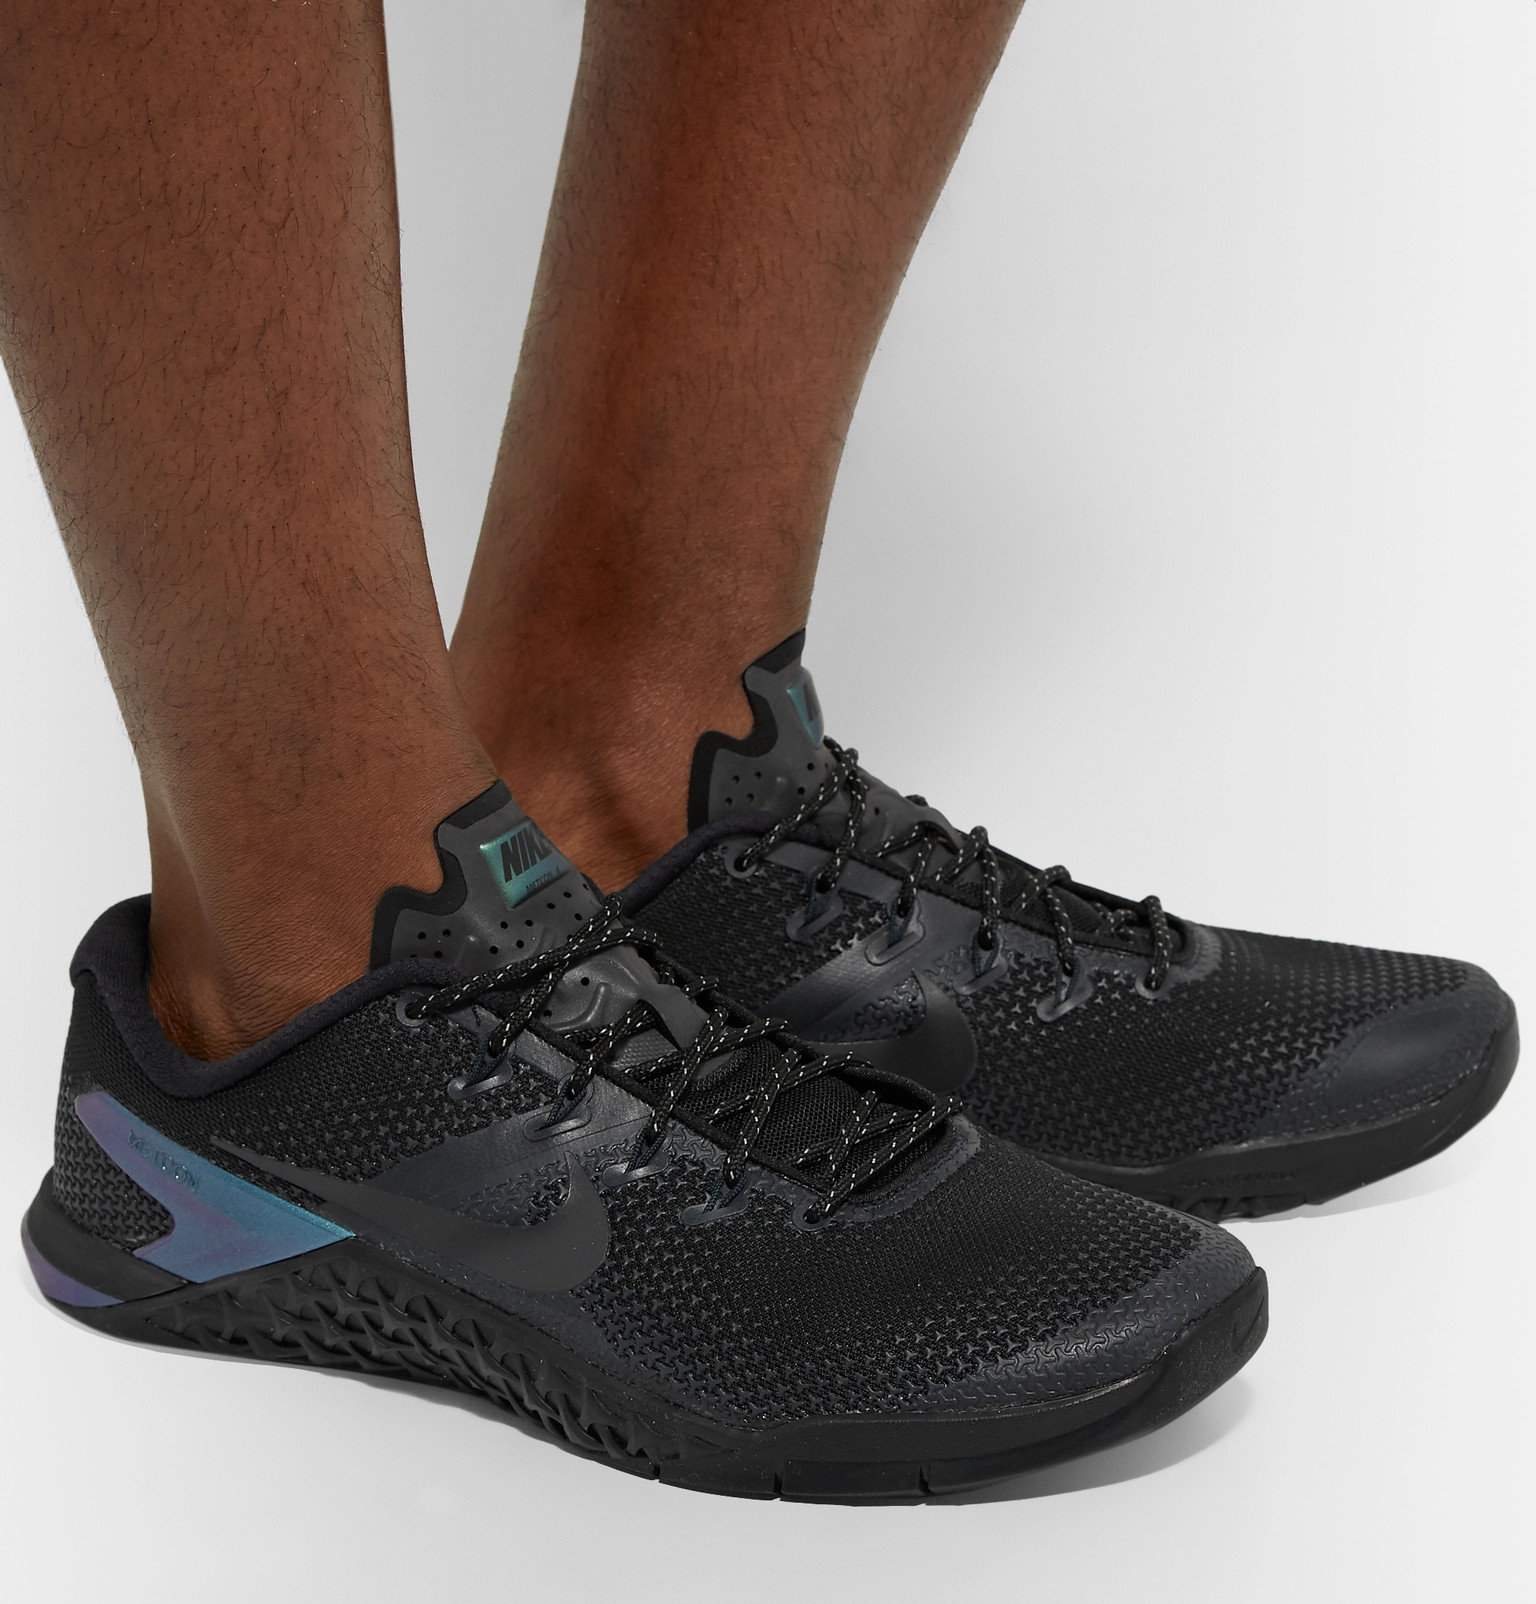 check out 773a1 f6760 Nike TrainingMetcon 4 Premium Rubber-Trimmed Mesh Sneakers